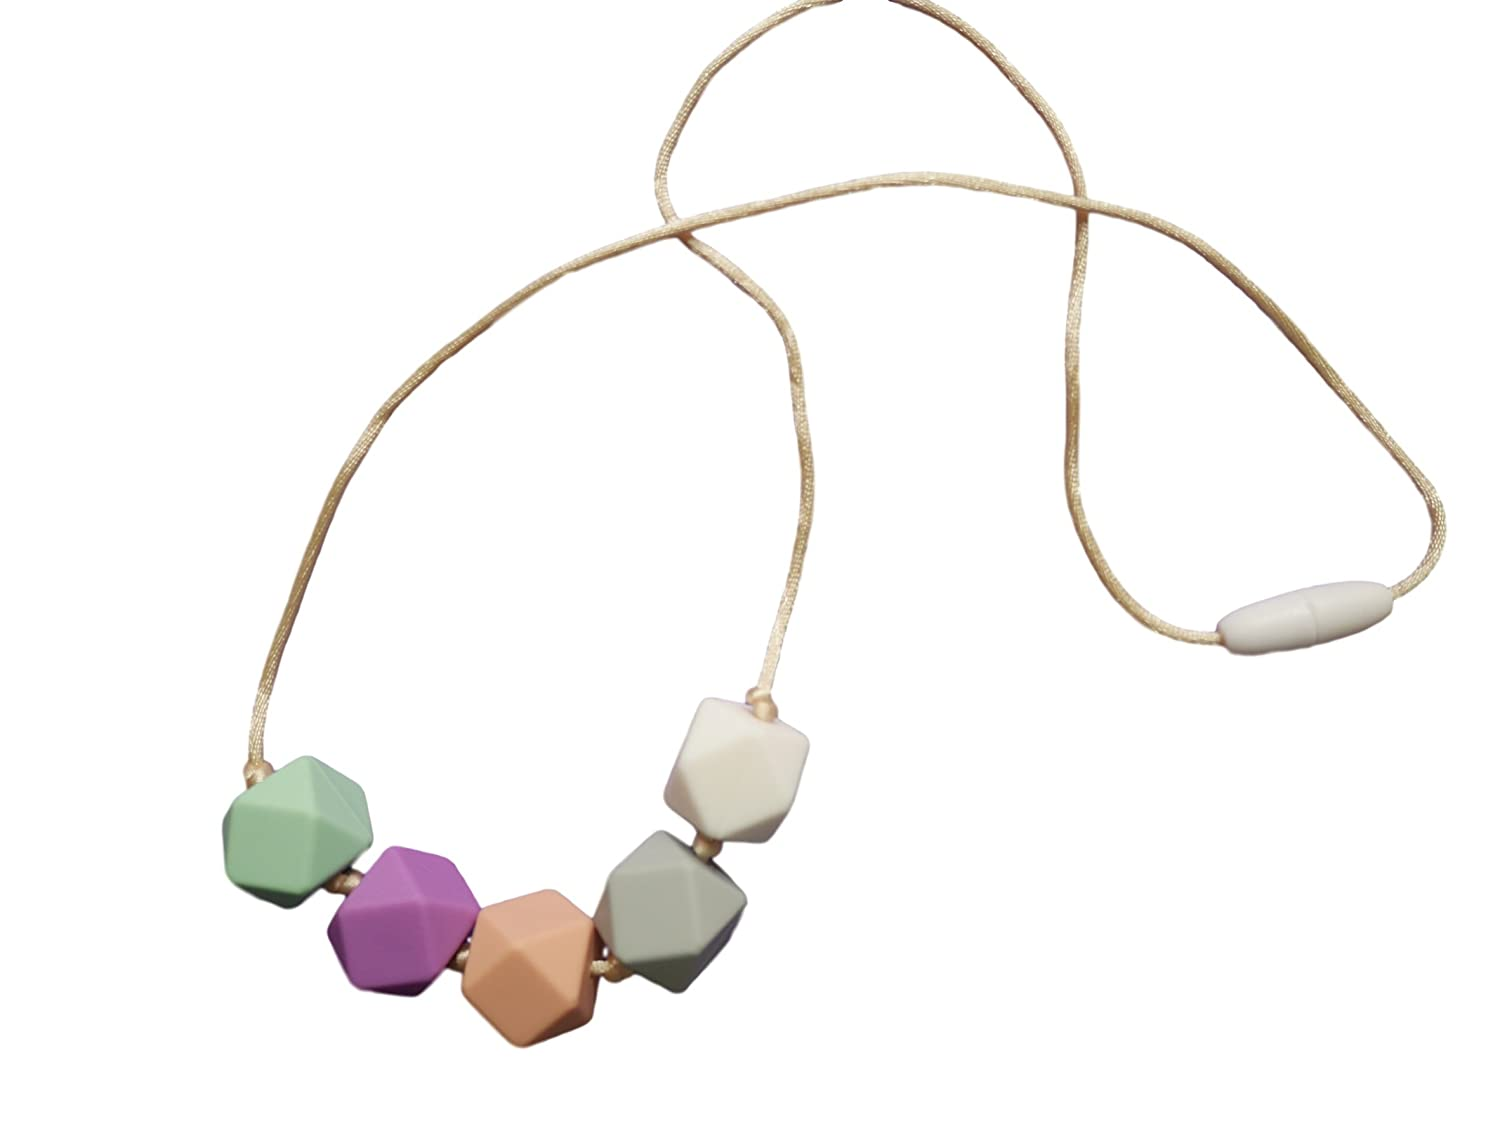 Fancy Pastel Crayon Colours Silicone Teething Necklace Breastfeeding Baby Hexagon Knotted Beads BPA Free, Hand-Made by MilkMama